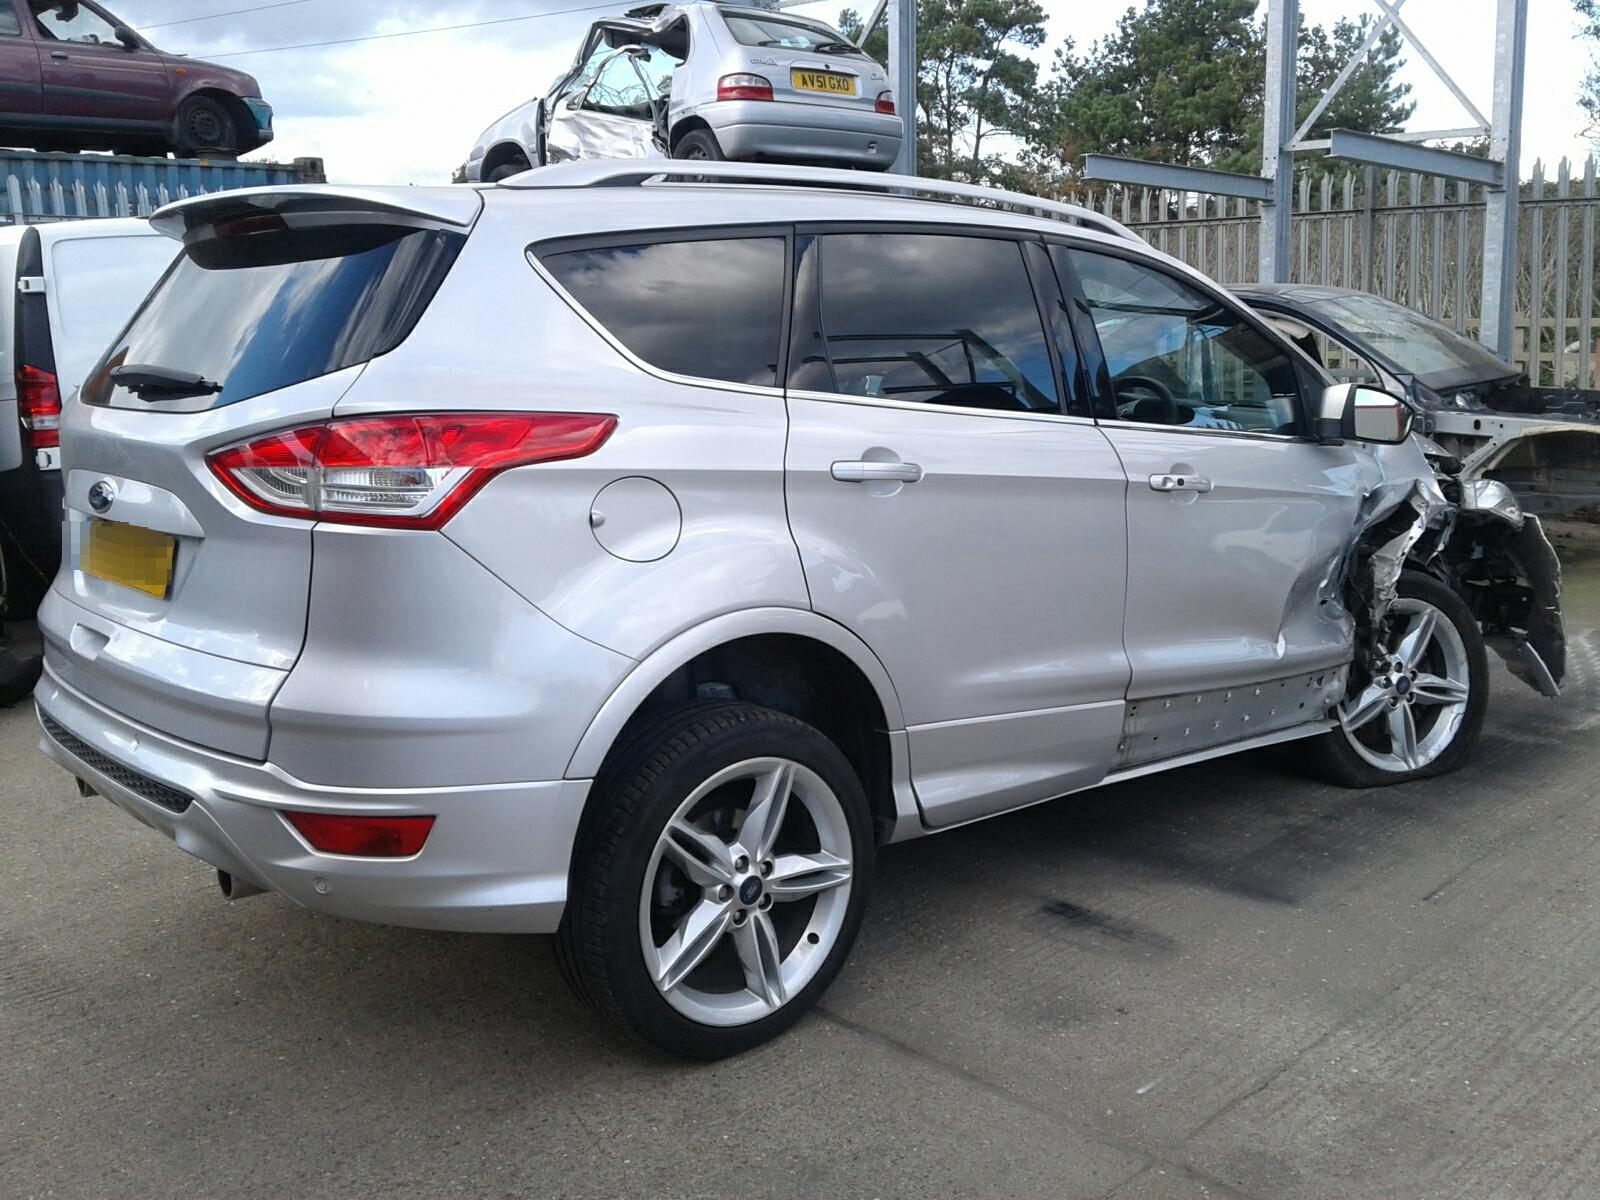 2014 ford kuga 2012 to 2016 5 door estate diesel manual breaking for used and spare parts. Black Bedroom Furniture Sets. Home Design Ideas